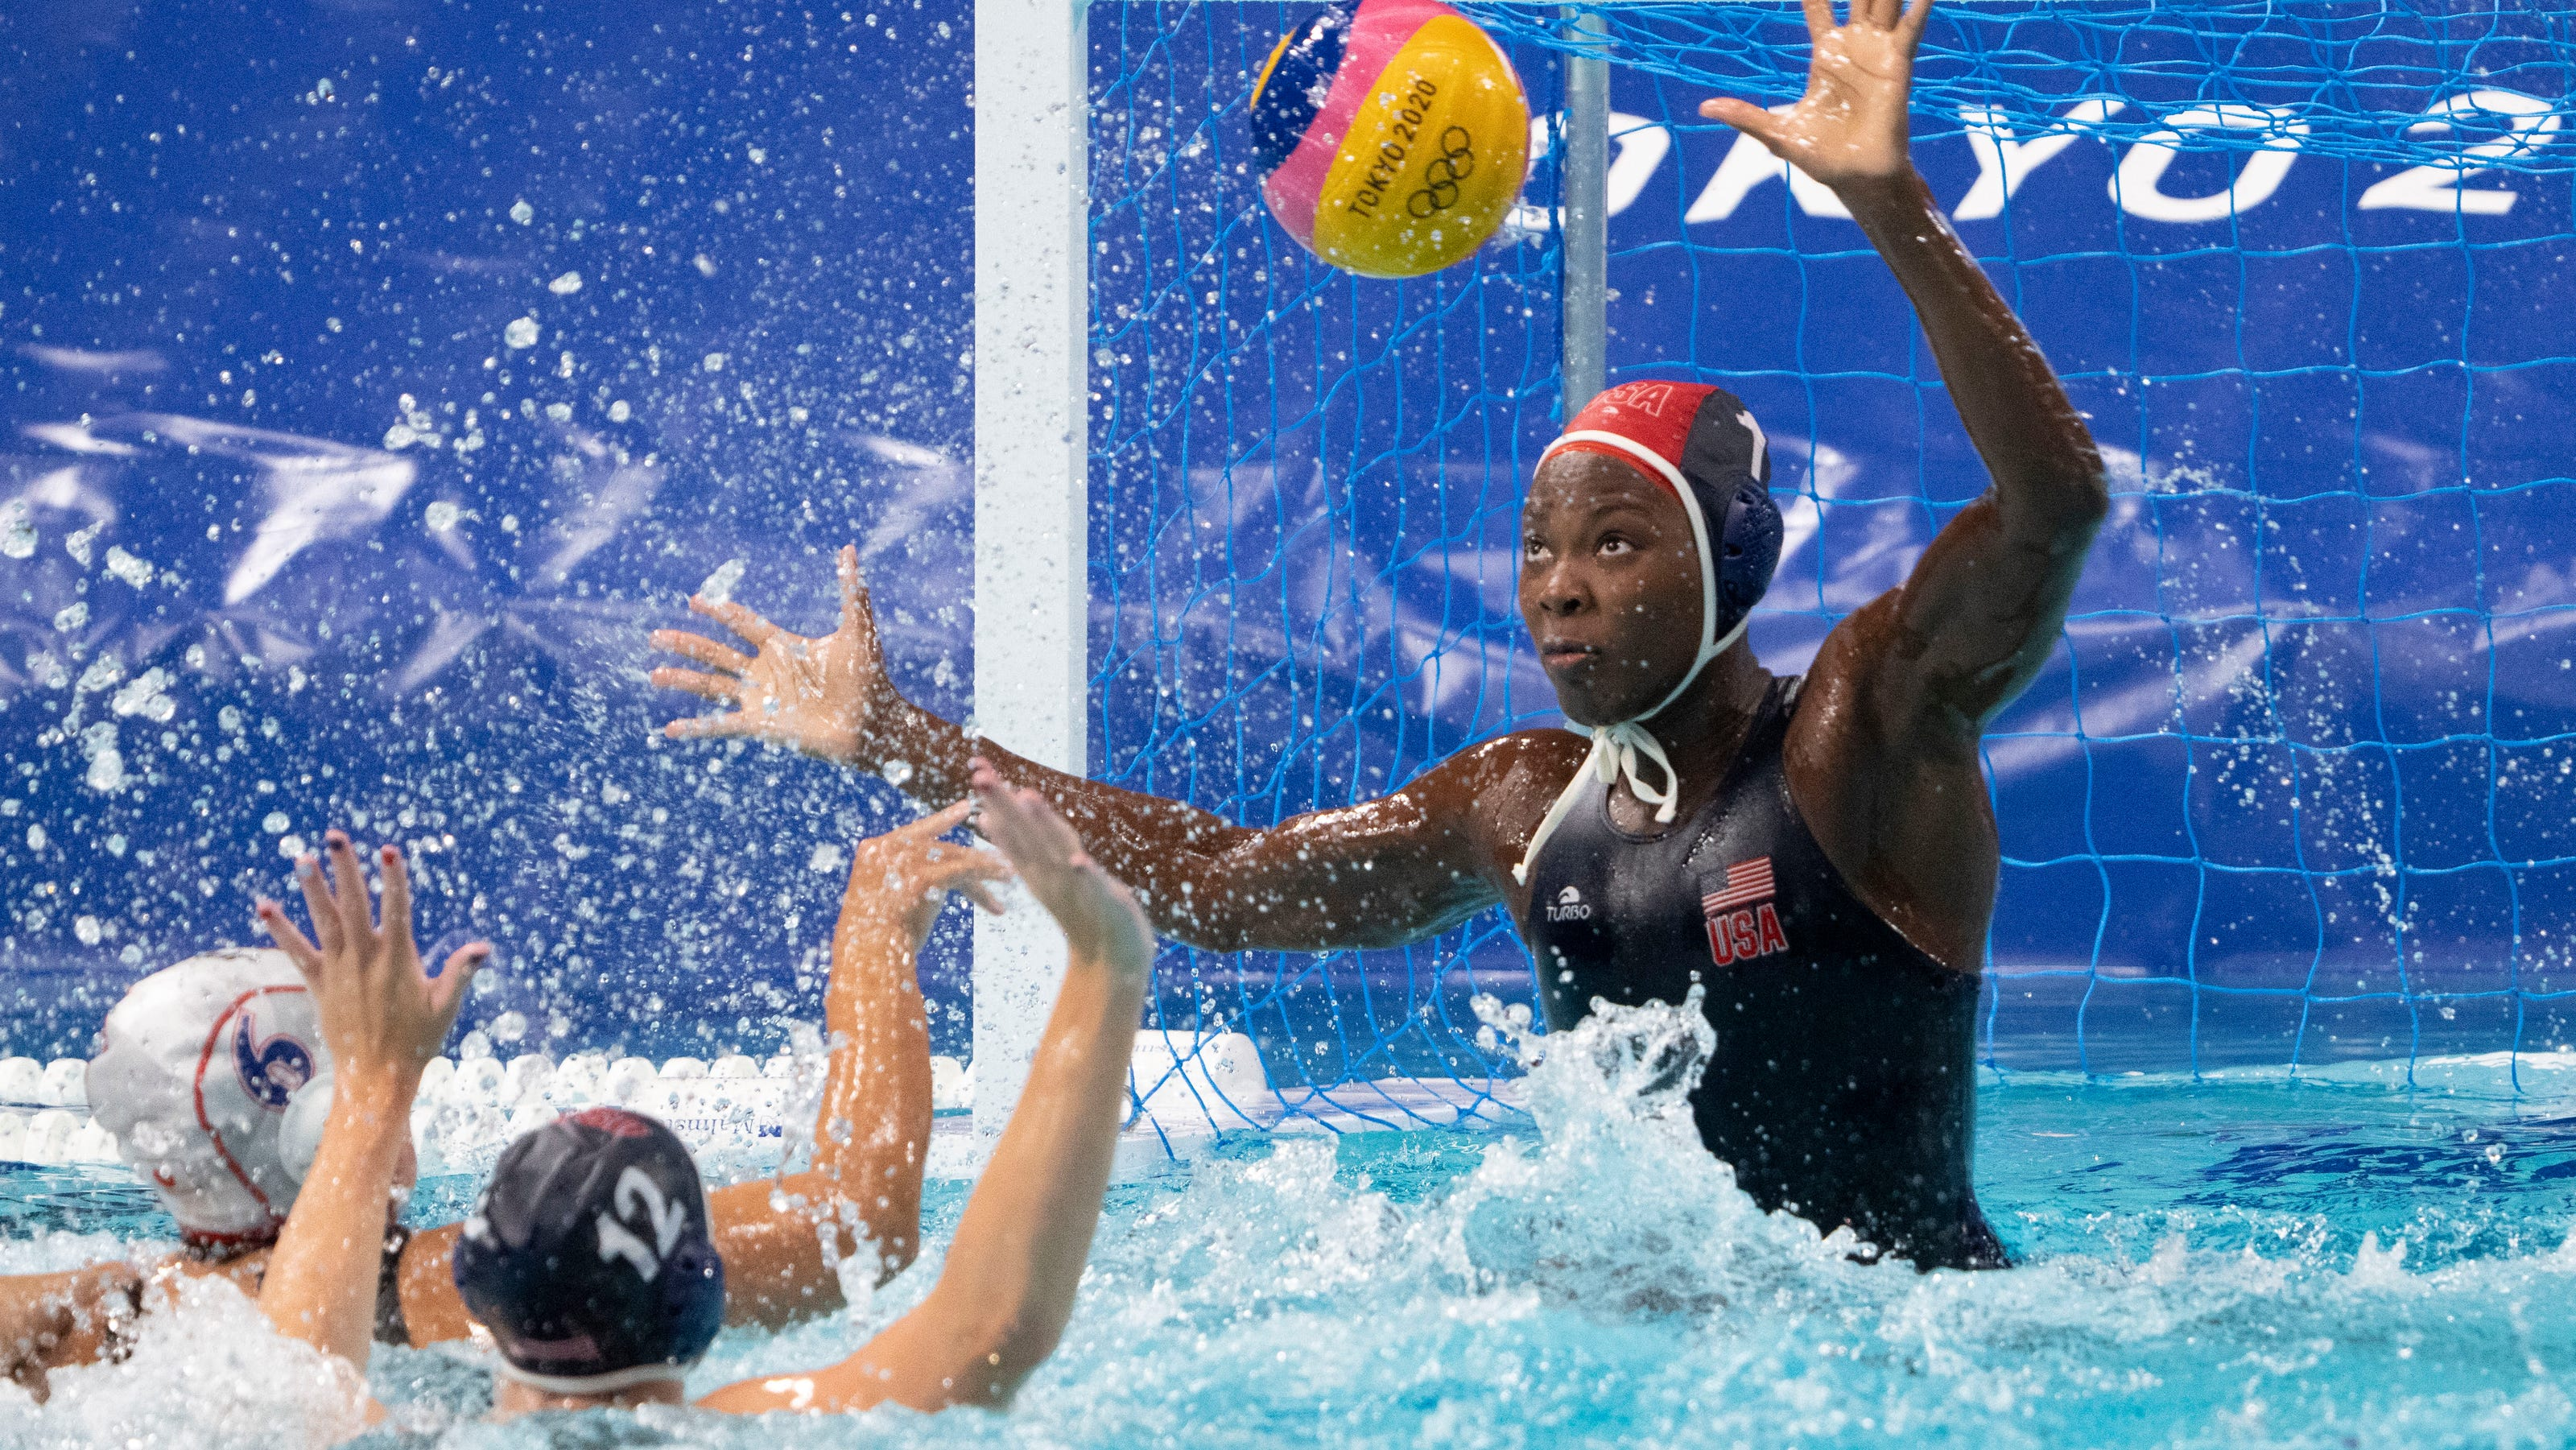 Oops waterpolo 50 Classic